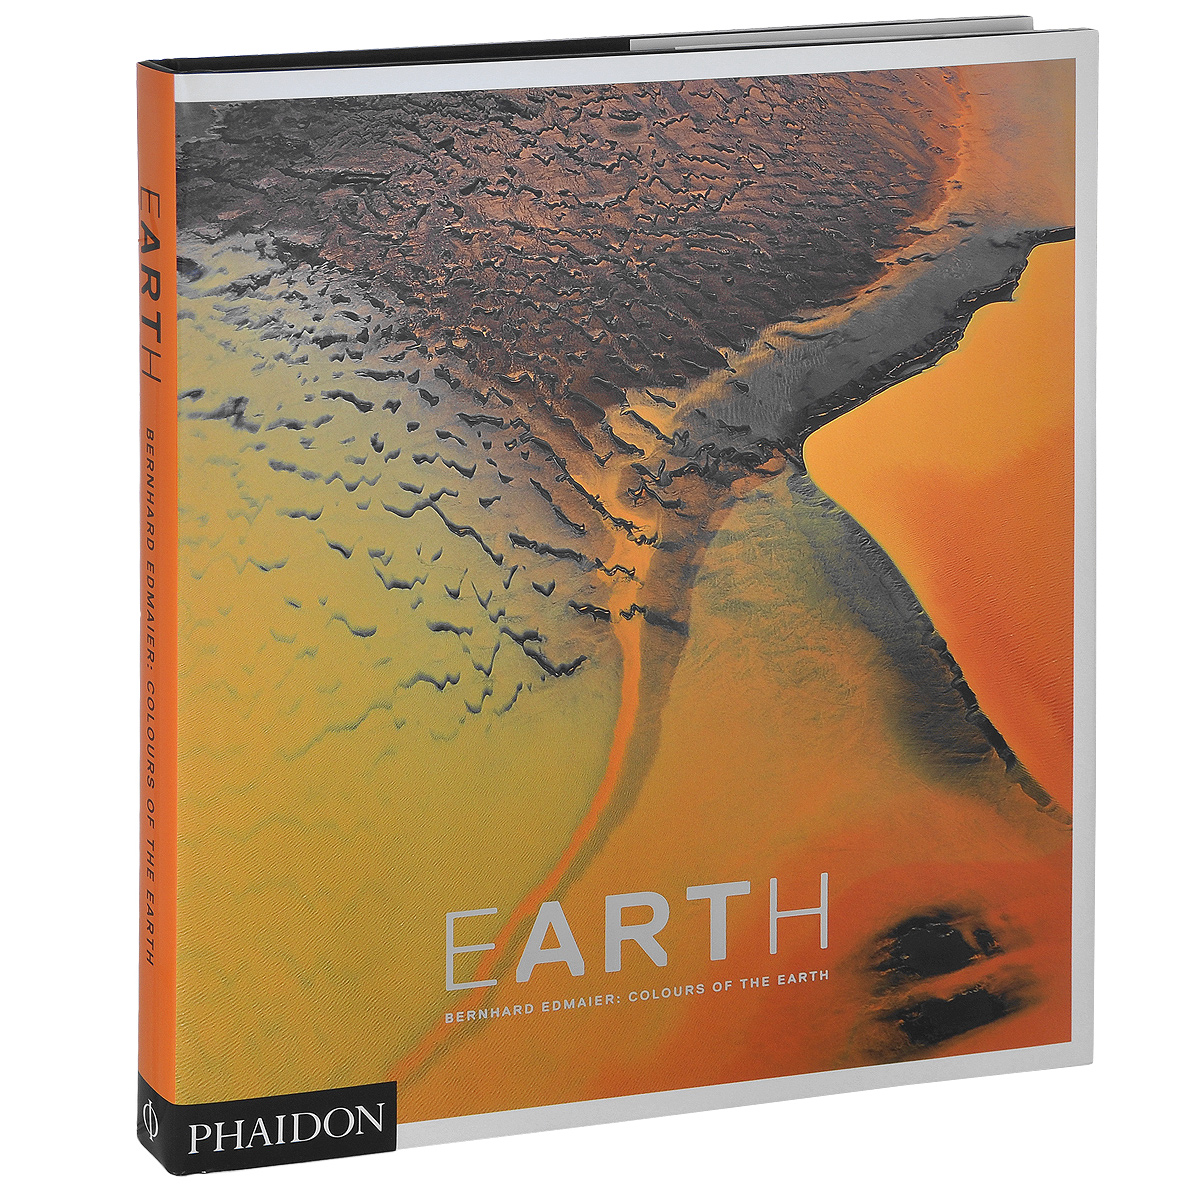 Earth: Bernhard Edmaier: Colours of the Earth from the earth to the moon